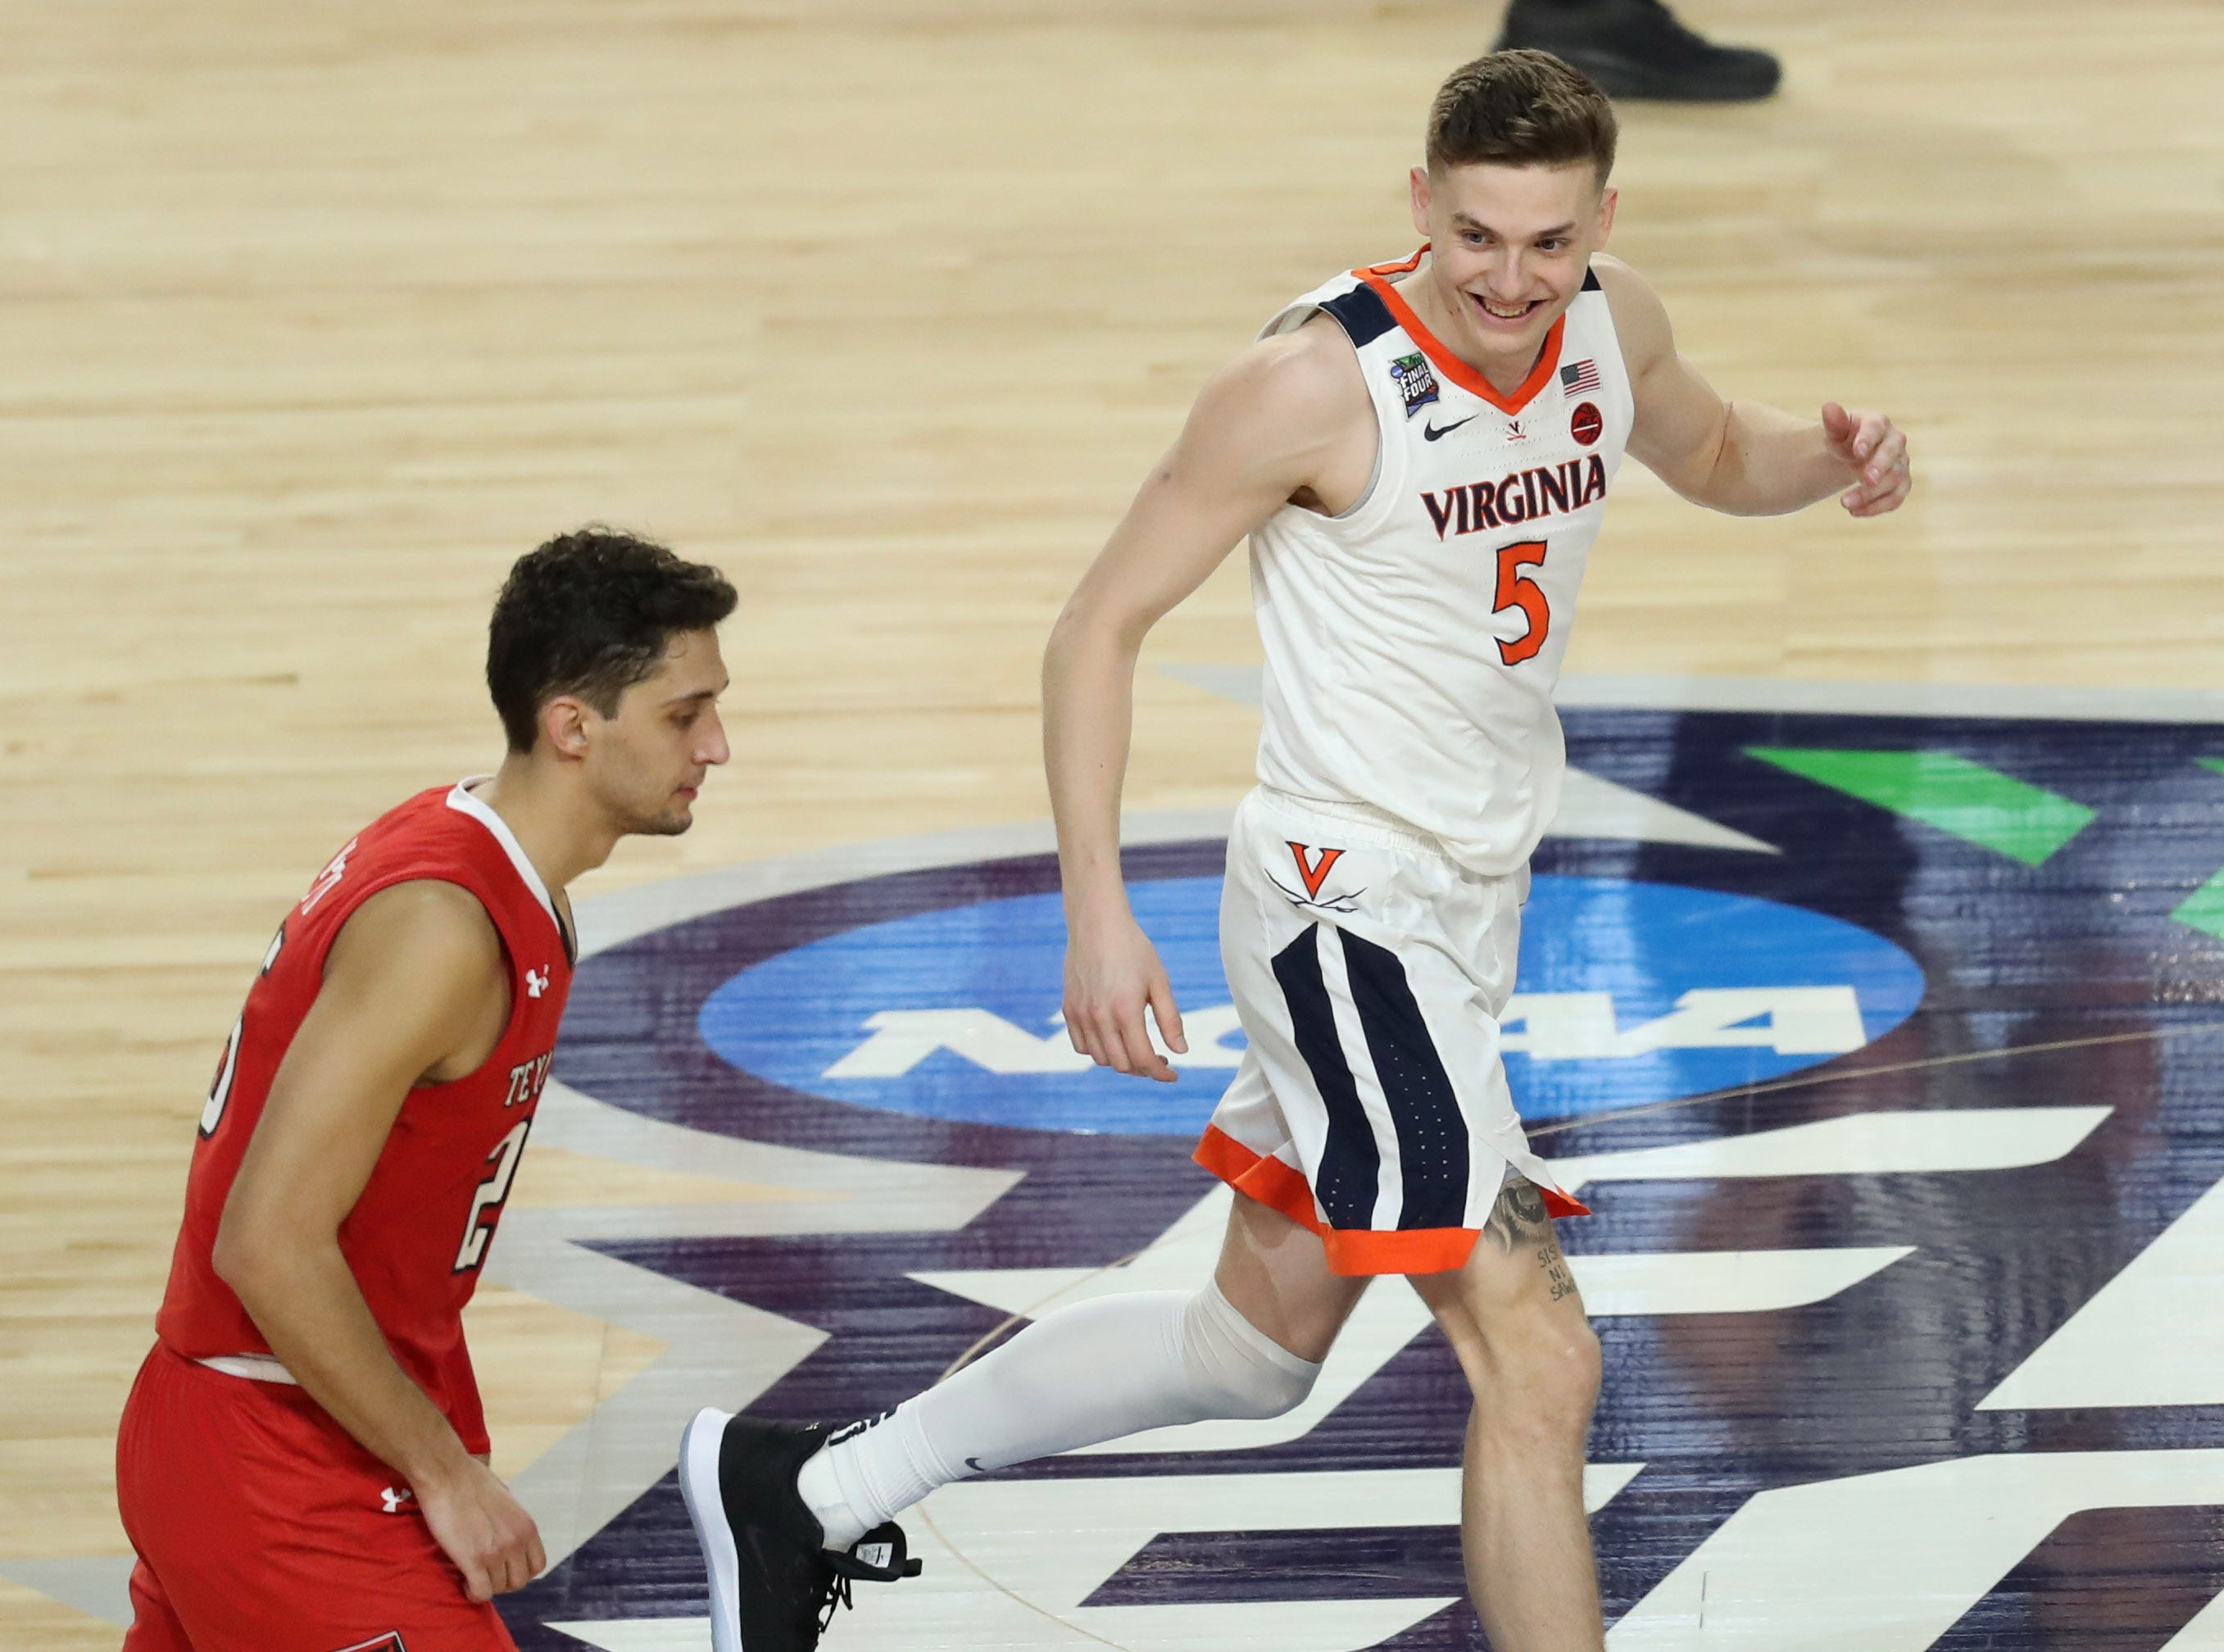 Apr 8, 2019; Minneapolis, MN, USA; Virginia Cavaliers guard Kyle Guy (5) smiles as he runs down the court with Texas Tech Red Raiders guard Davide Moretti (25) during the second half in the championship game of the 2019 men's Final Four at US Bank Stadium. Mandatory Credit: Brace Hemmelgarn-USA TODAY Sports